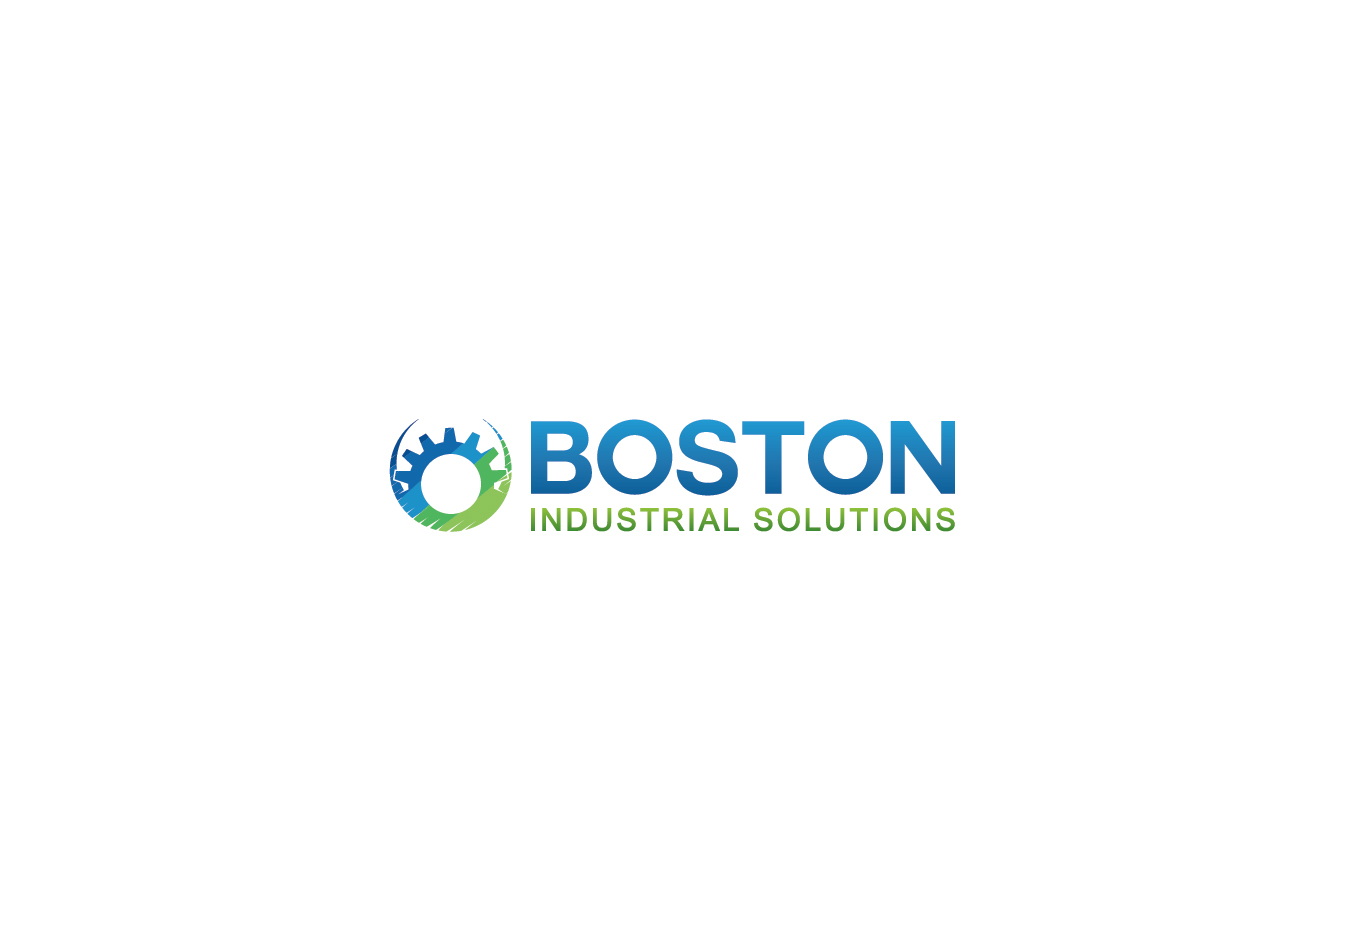 bostonindustrialsolutions1